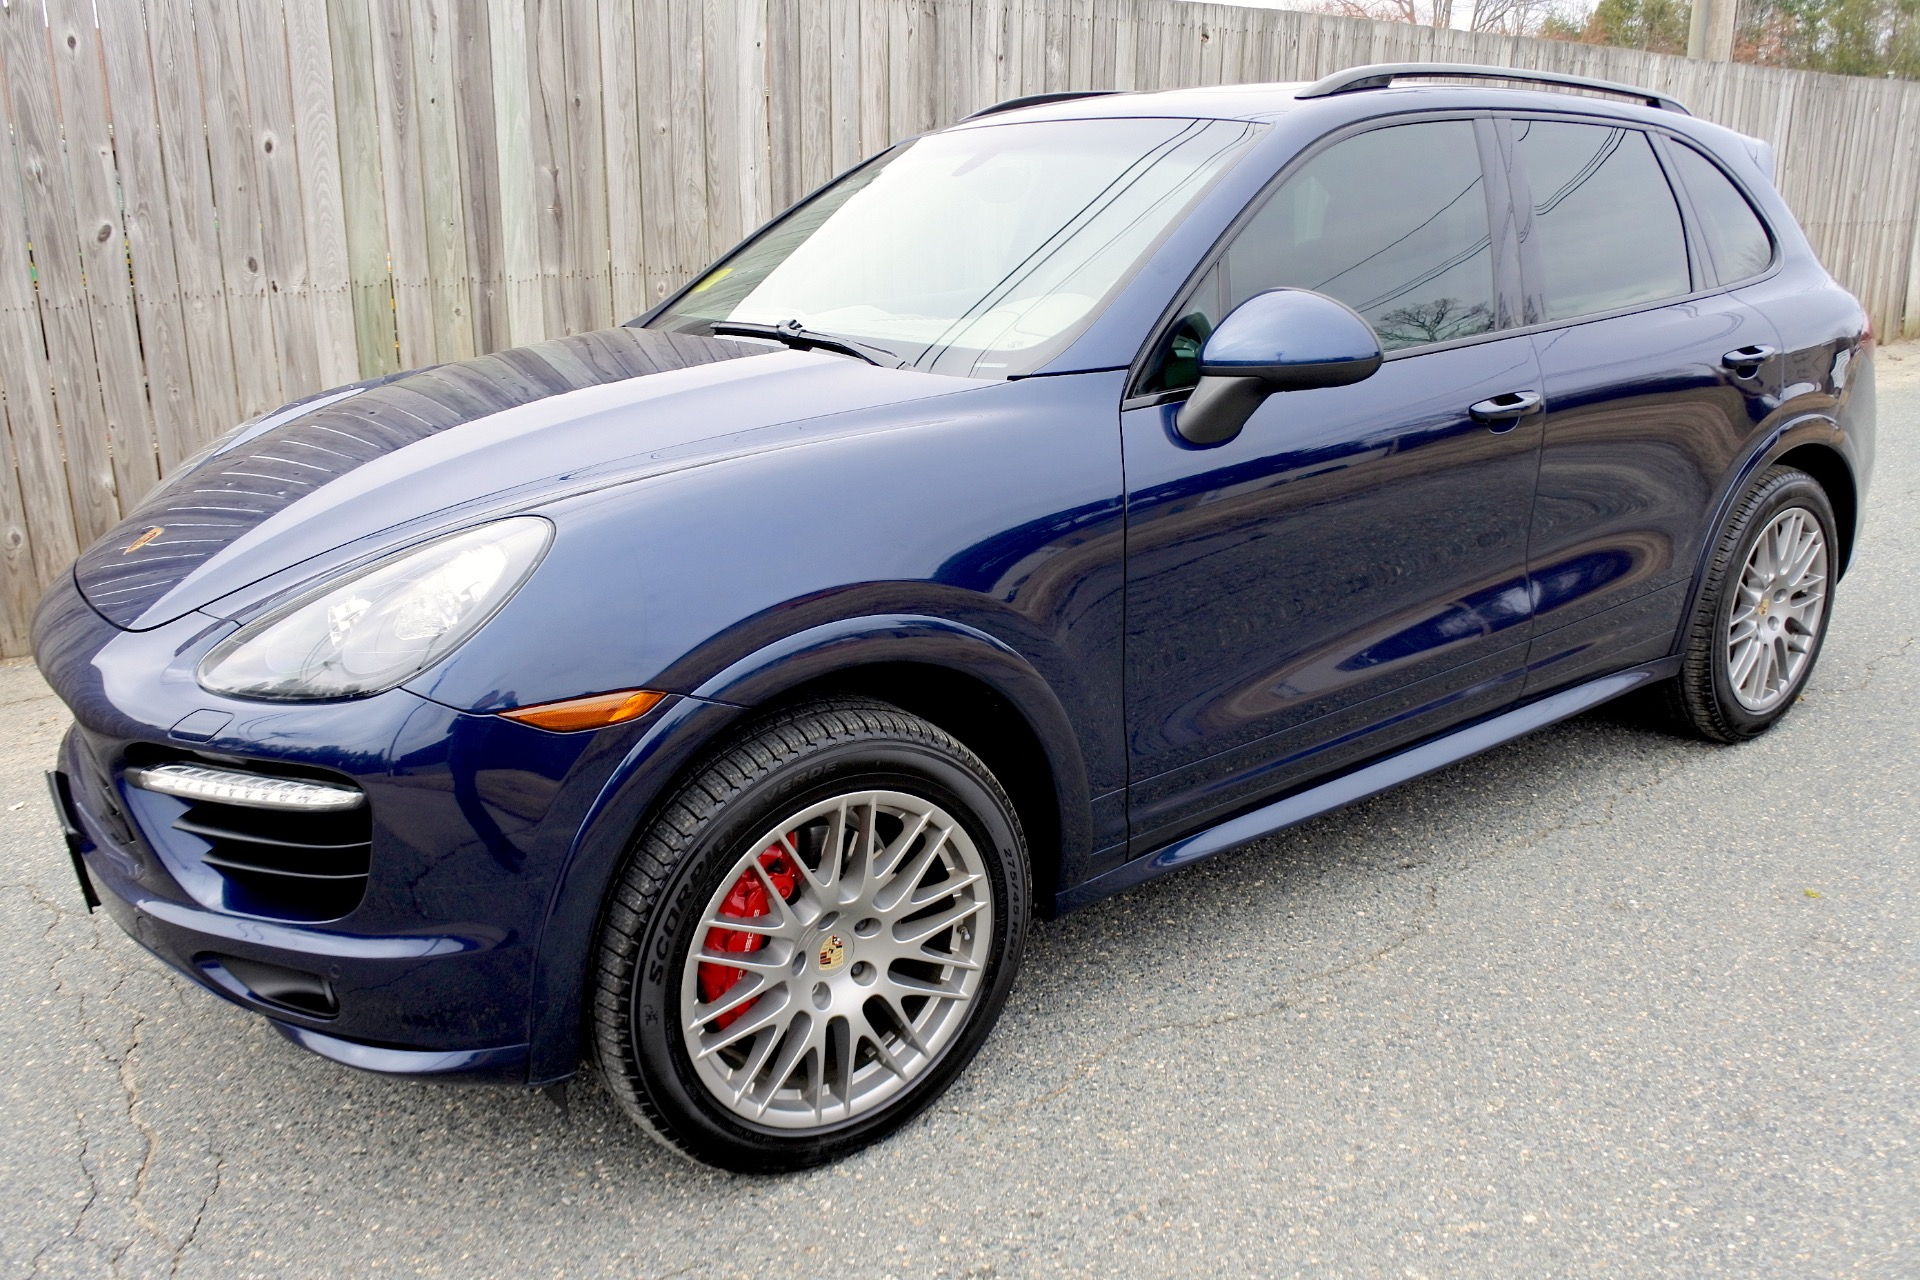 Used 2013 Porsche Cayenne GTS AWD Used 2013 Porsche Cayenne GTS AWD for sale  at Metro West Motorcars LLC in Shrewsbury MA 1